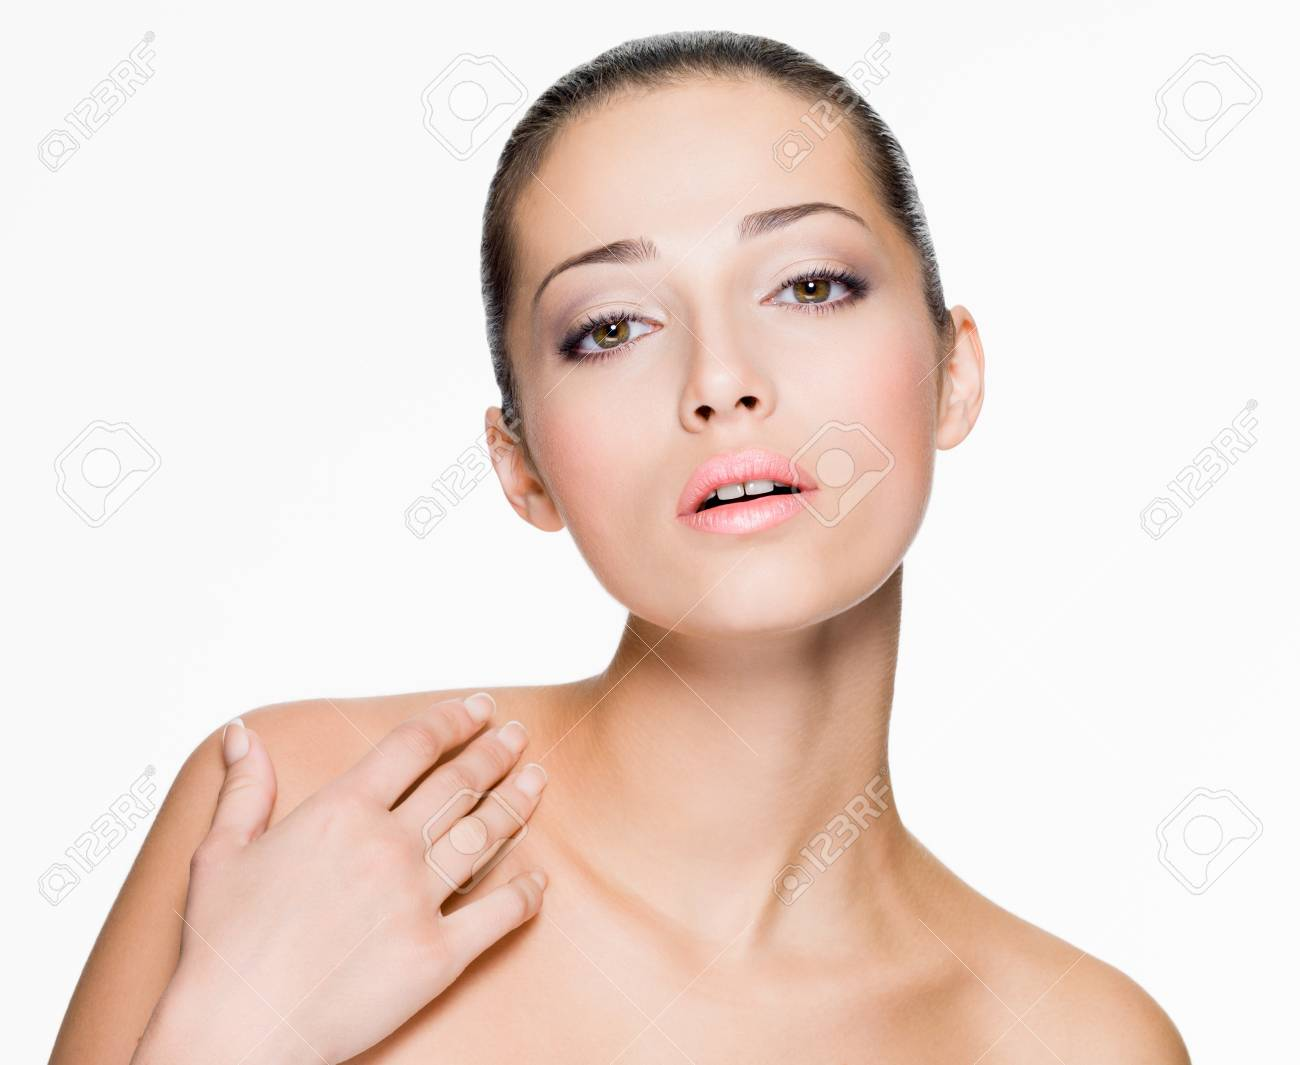 Closeup portrait of beautiful woman with fresh skin of face - isolated on white Stock Photo - 24246430